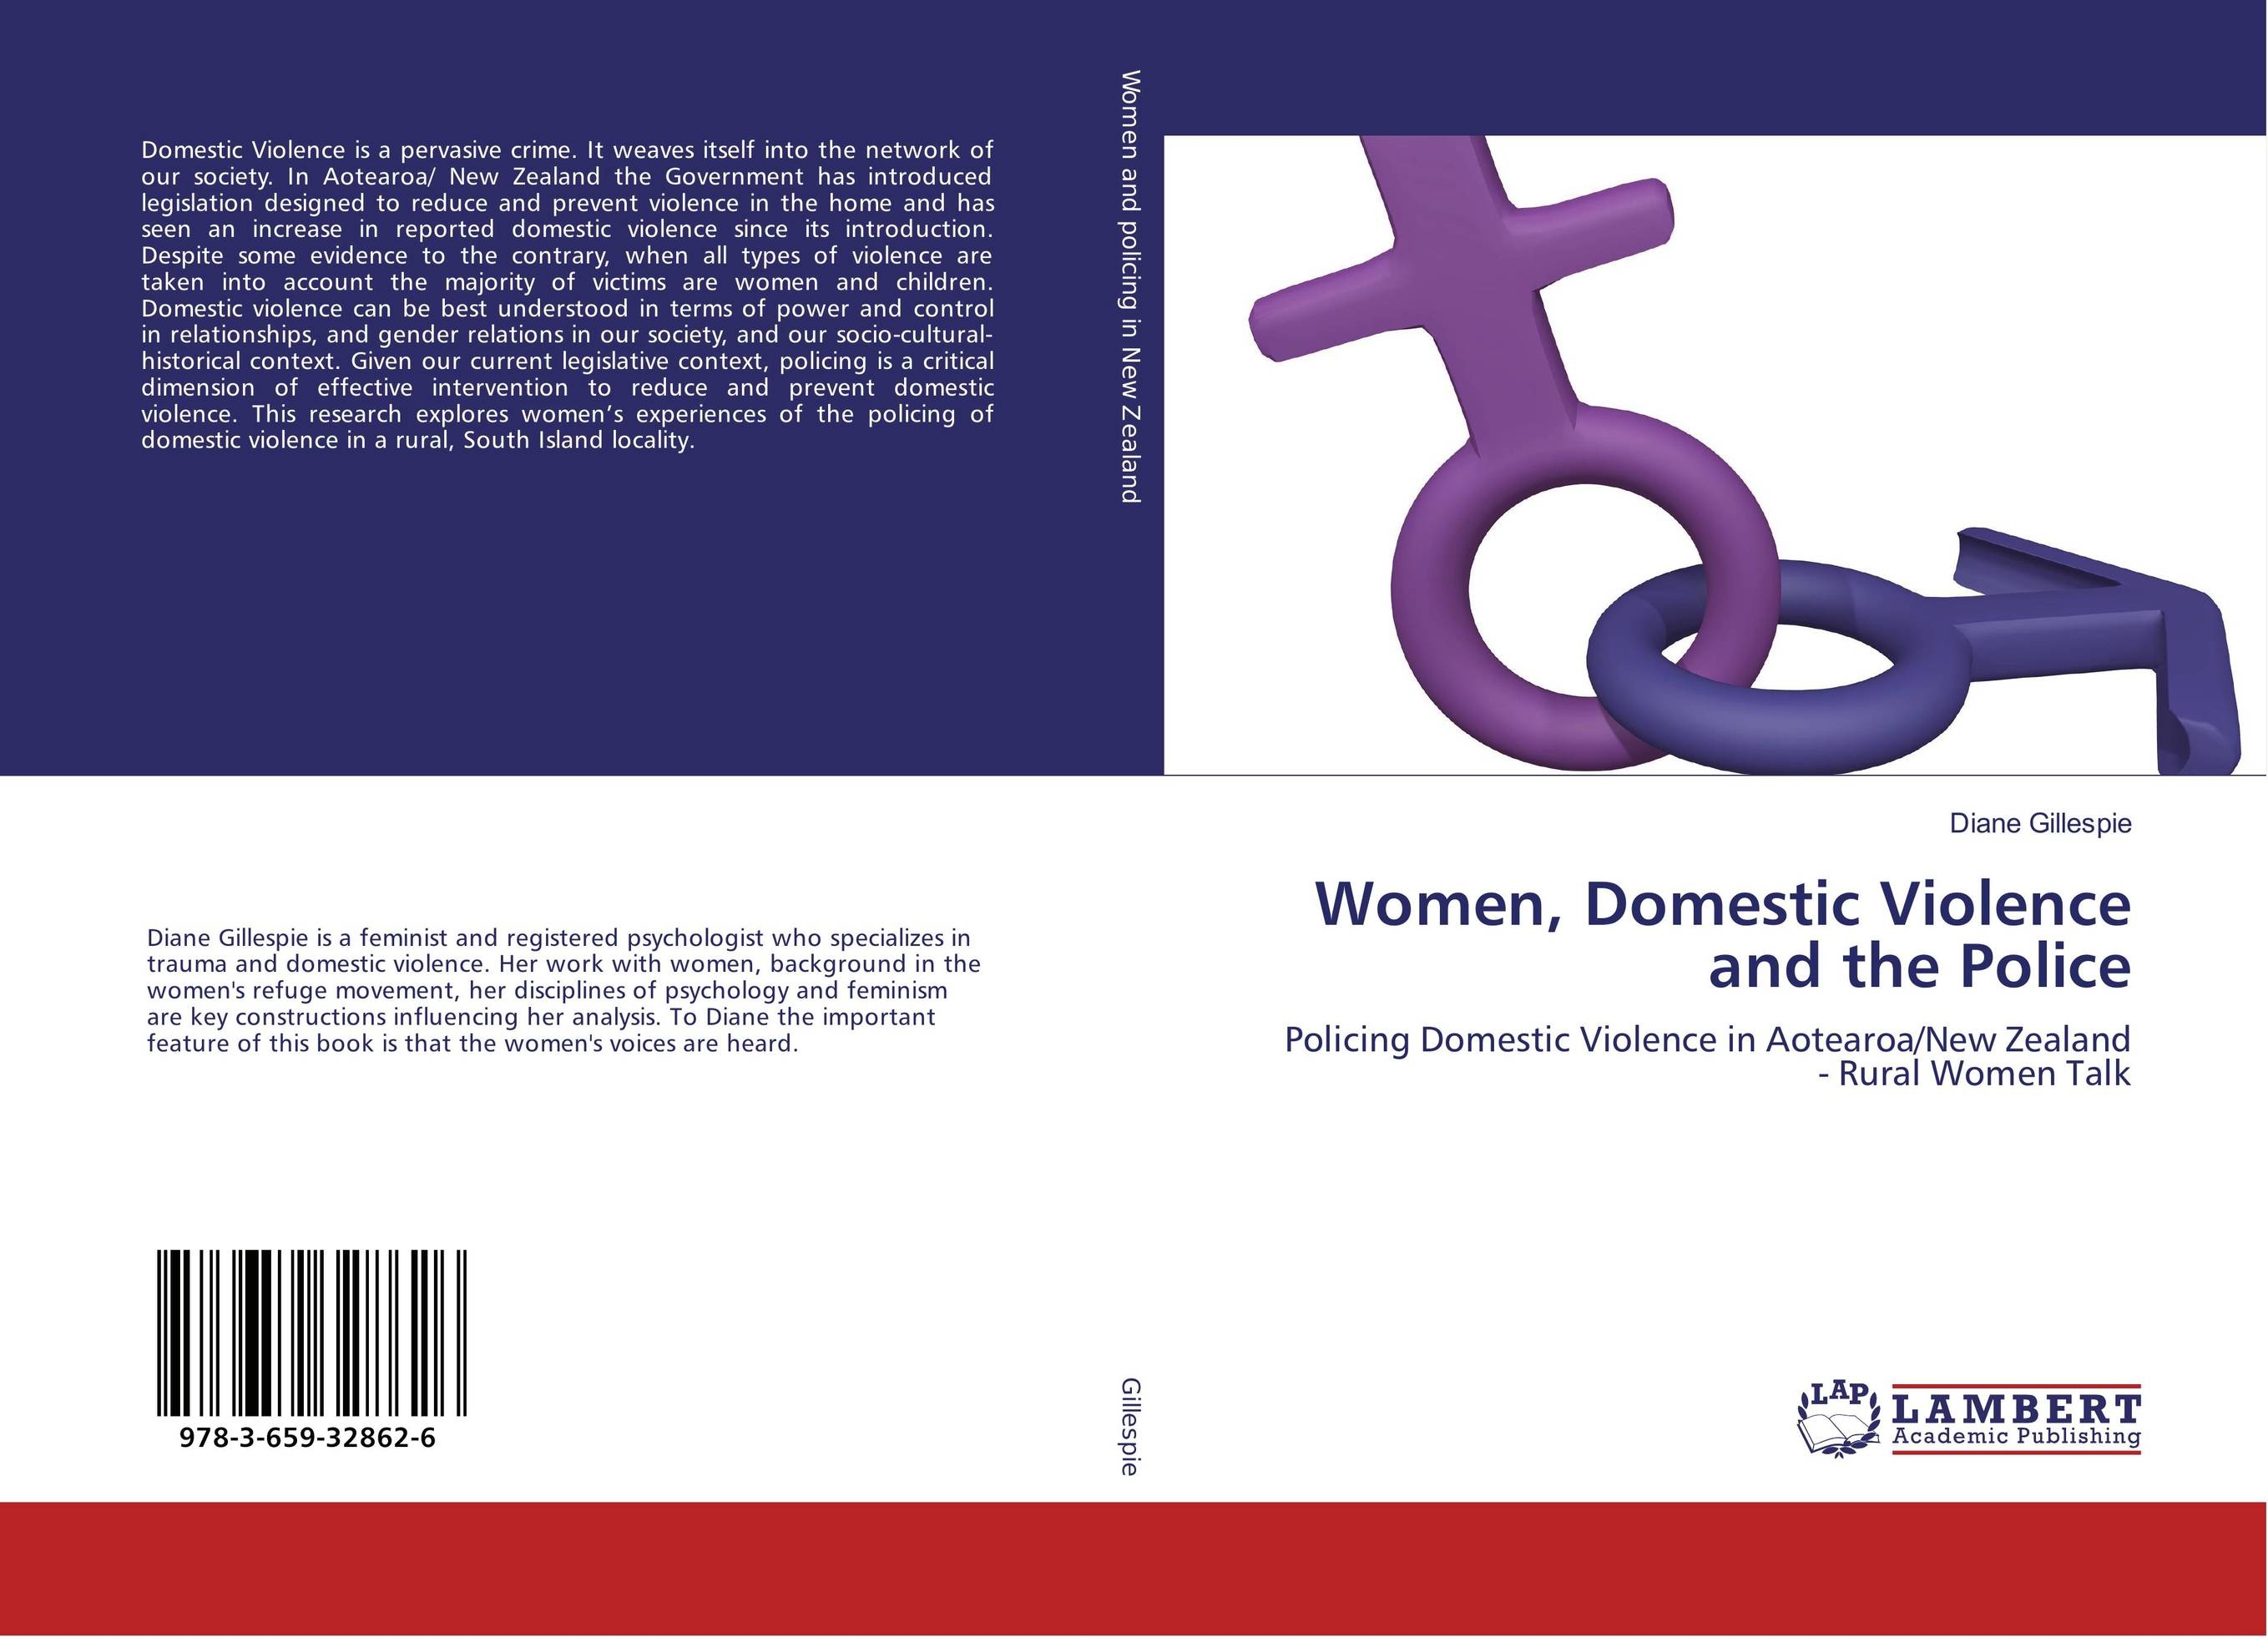 domestic violence and the police essay This sample police response to domestic violence research paper features 3200 words (10 pages), an outline, and a bibliography with 8 sources.